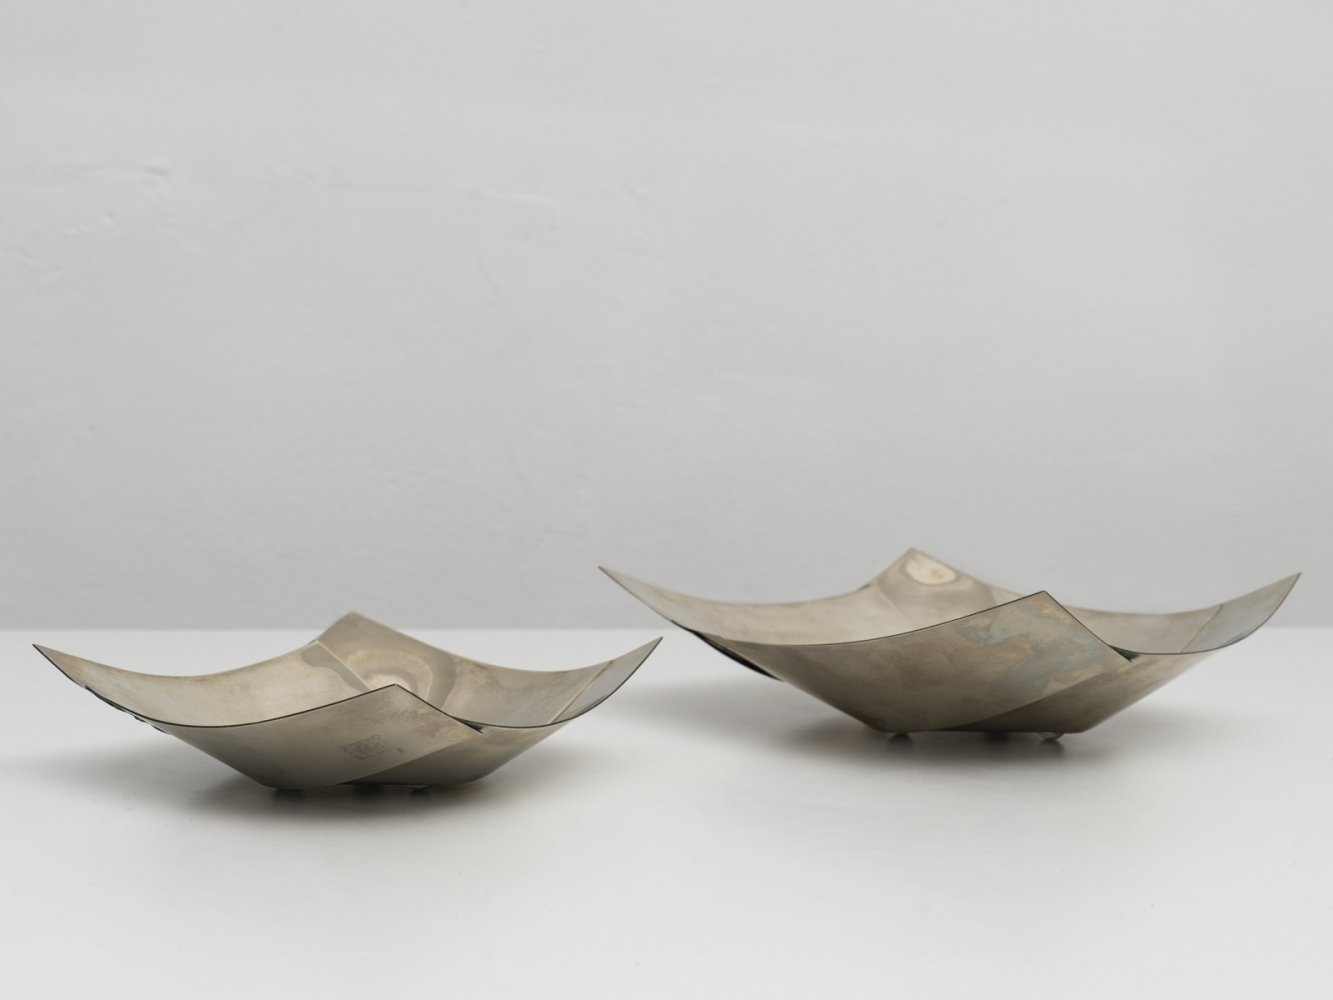 Pair of Maldive centerpieces by Bruno Munari for Danese, 1961